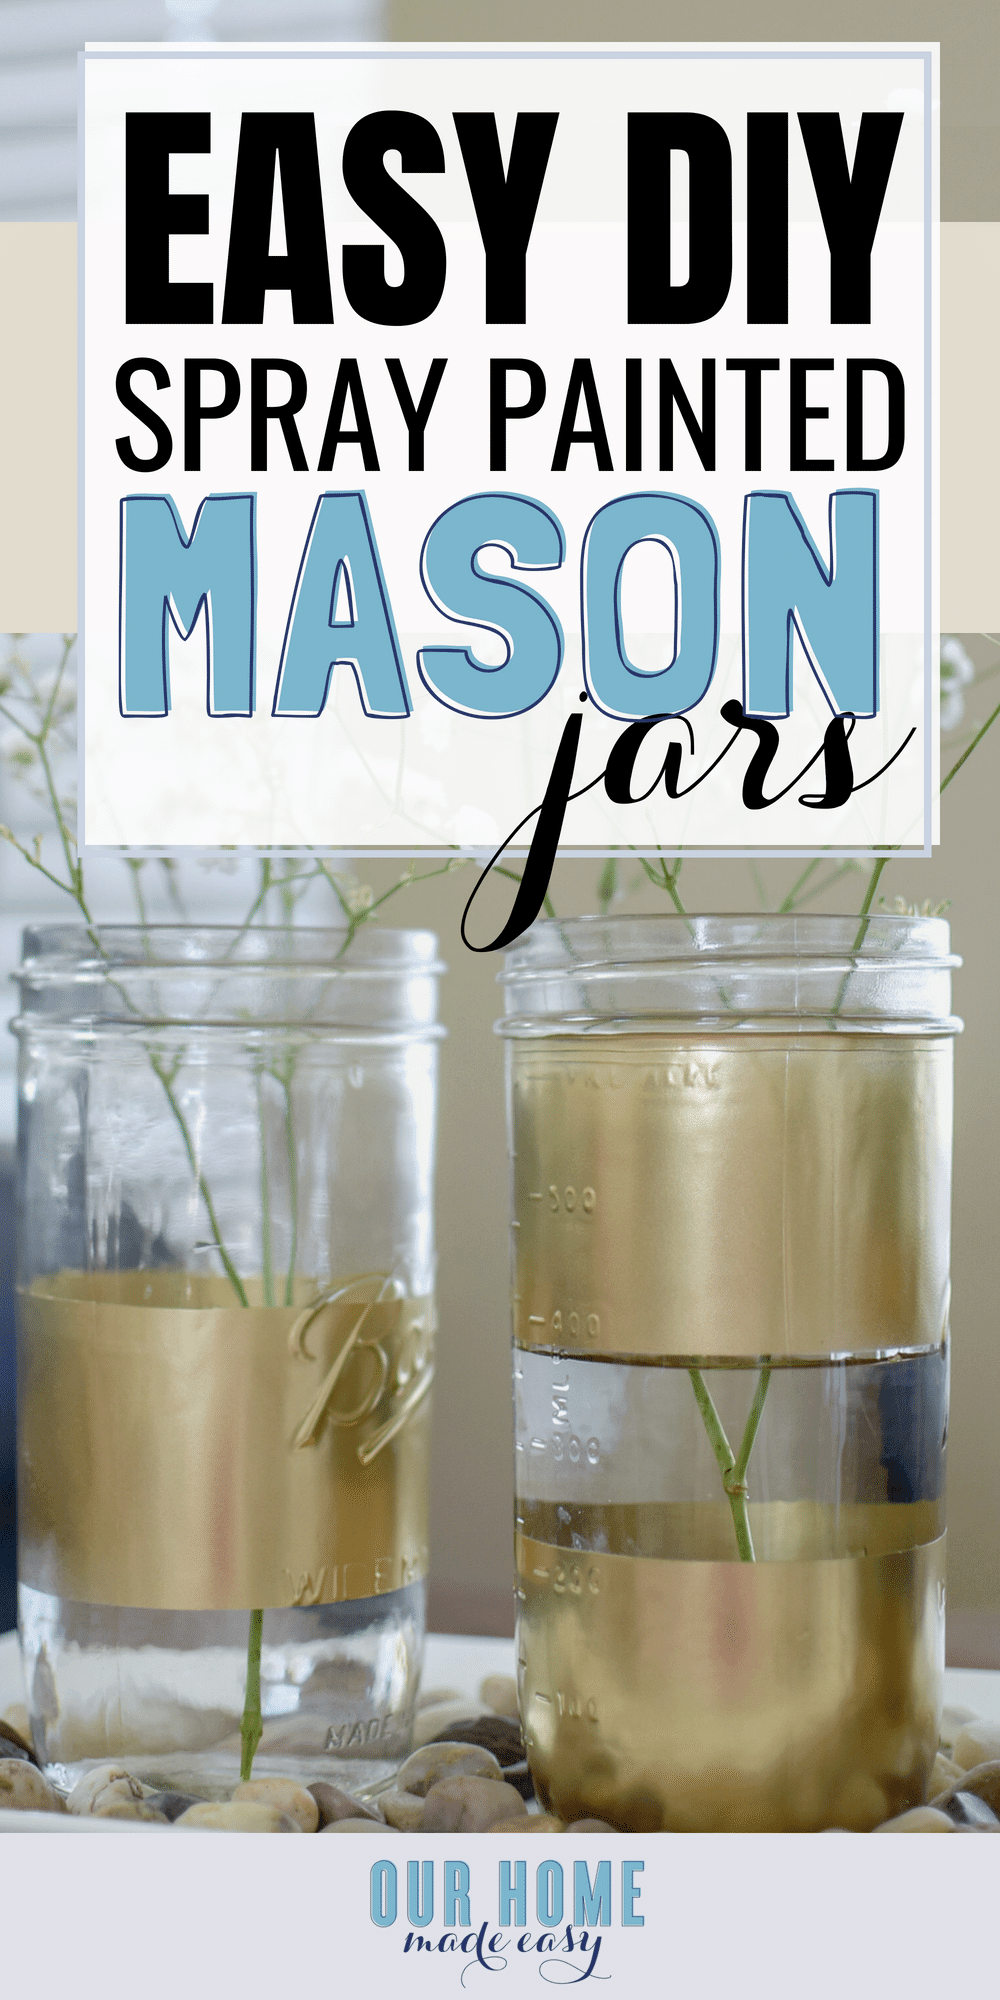 This quick project adds style-- without a big price tag! Spray painted mason jars are perfect for any season. #homedecor #painted #masonjars